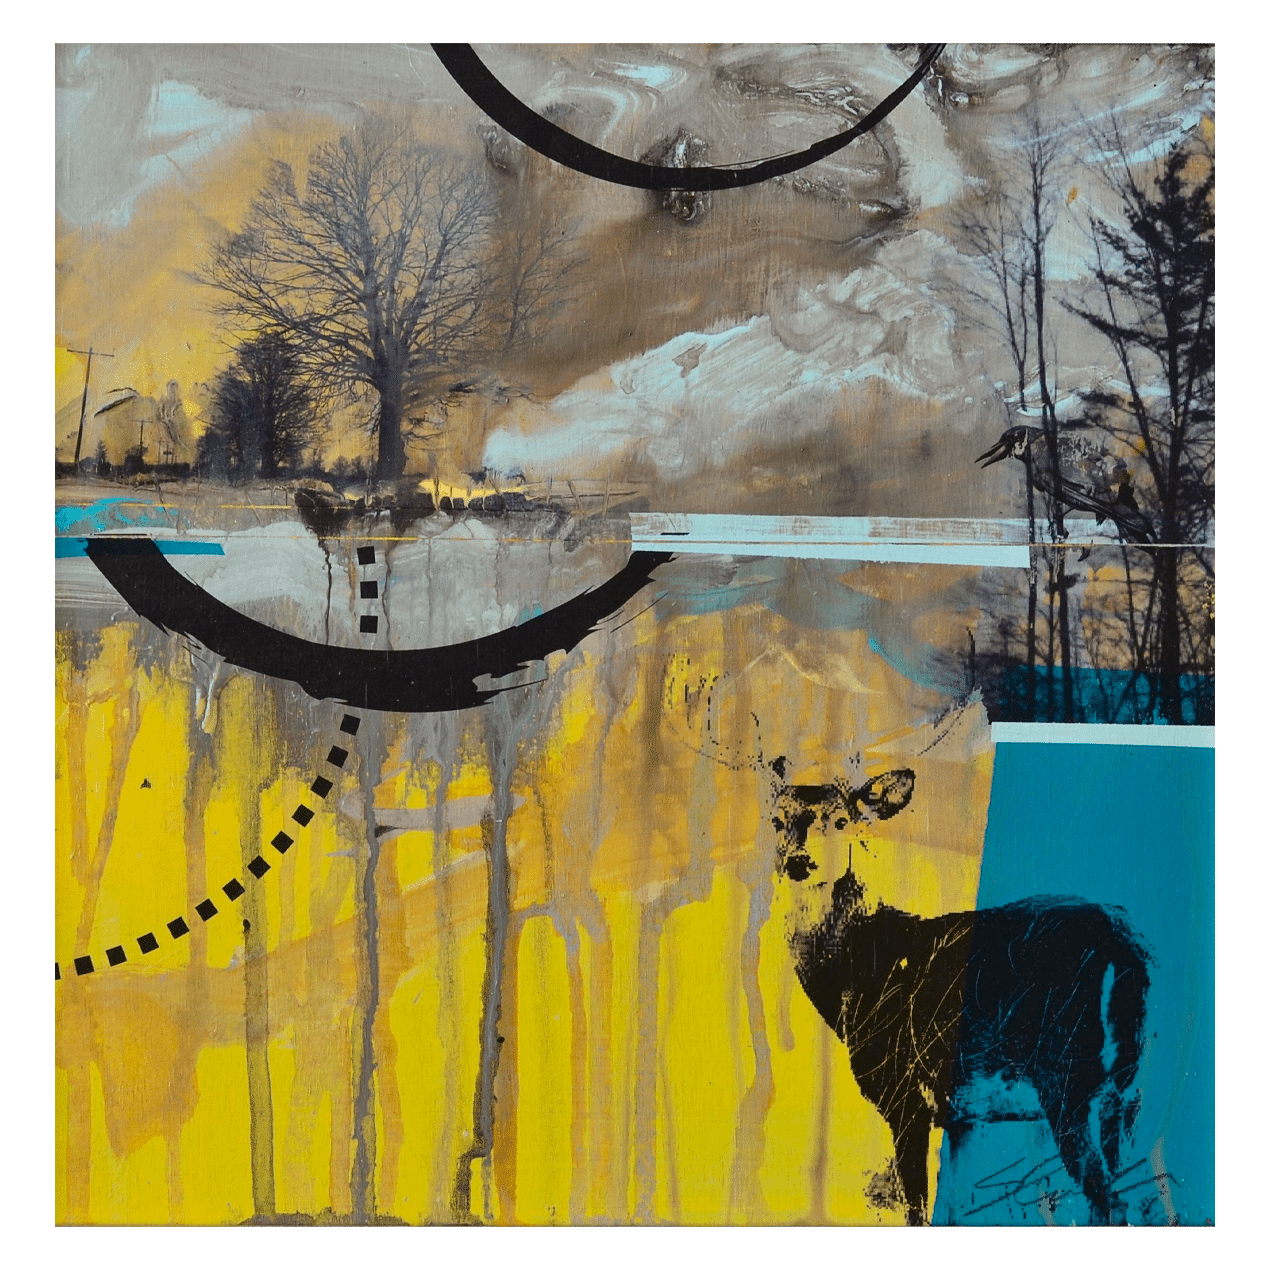 Deer and Crow 12 x 12 Mixed Media on Panel (Abstract, Landscape)